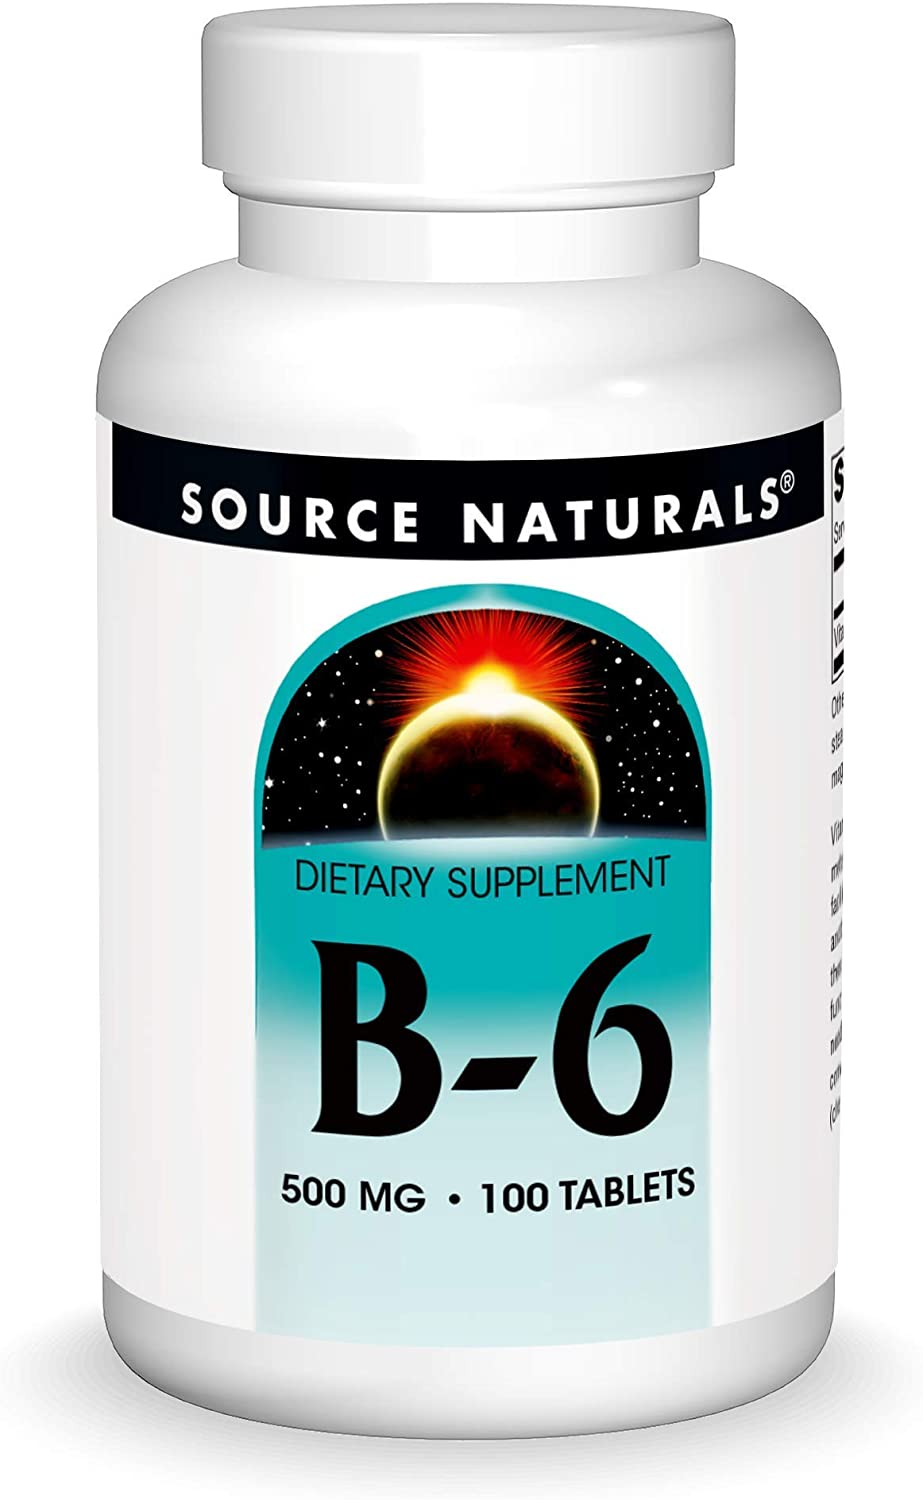 Source Naturals Vitamin B-6, 500 mg Immune System Support - 100 Tablets: Health & Personal Care